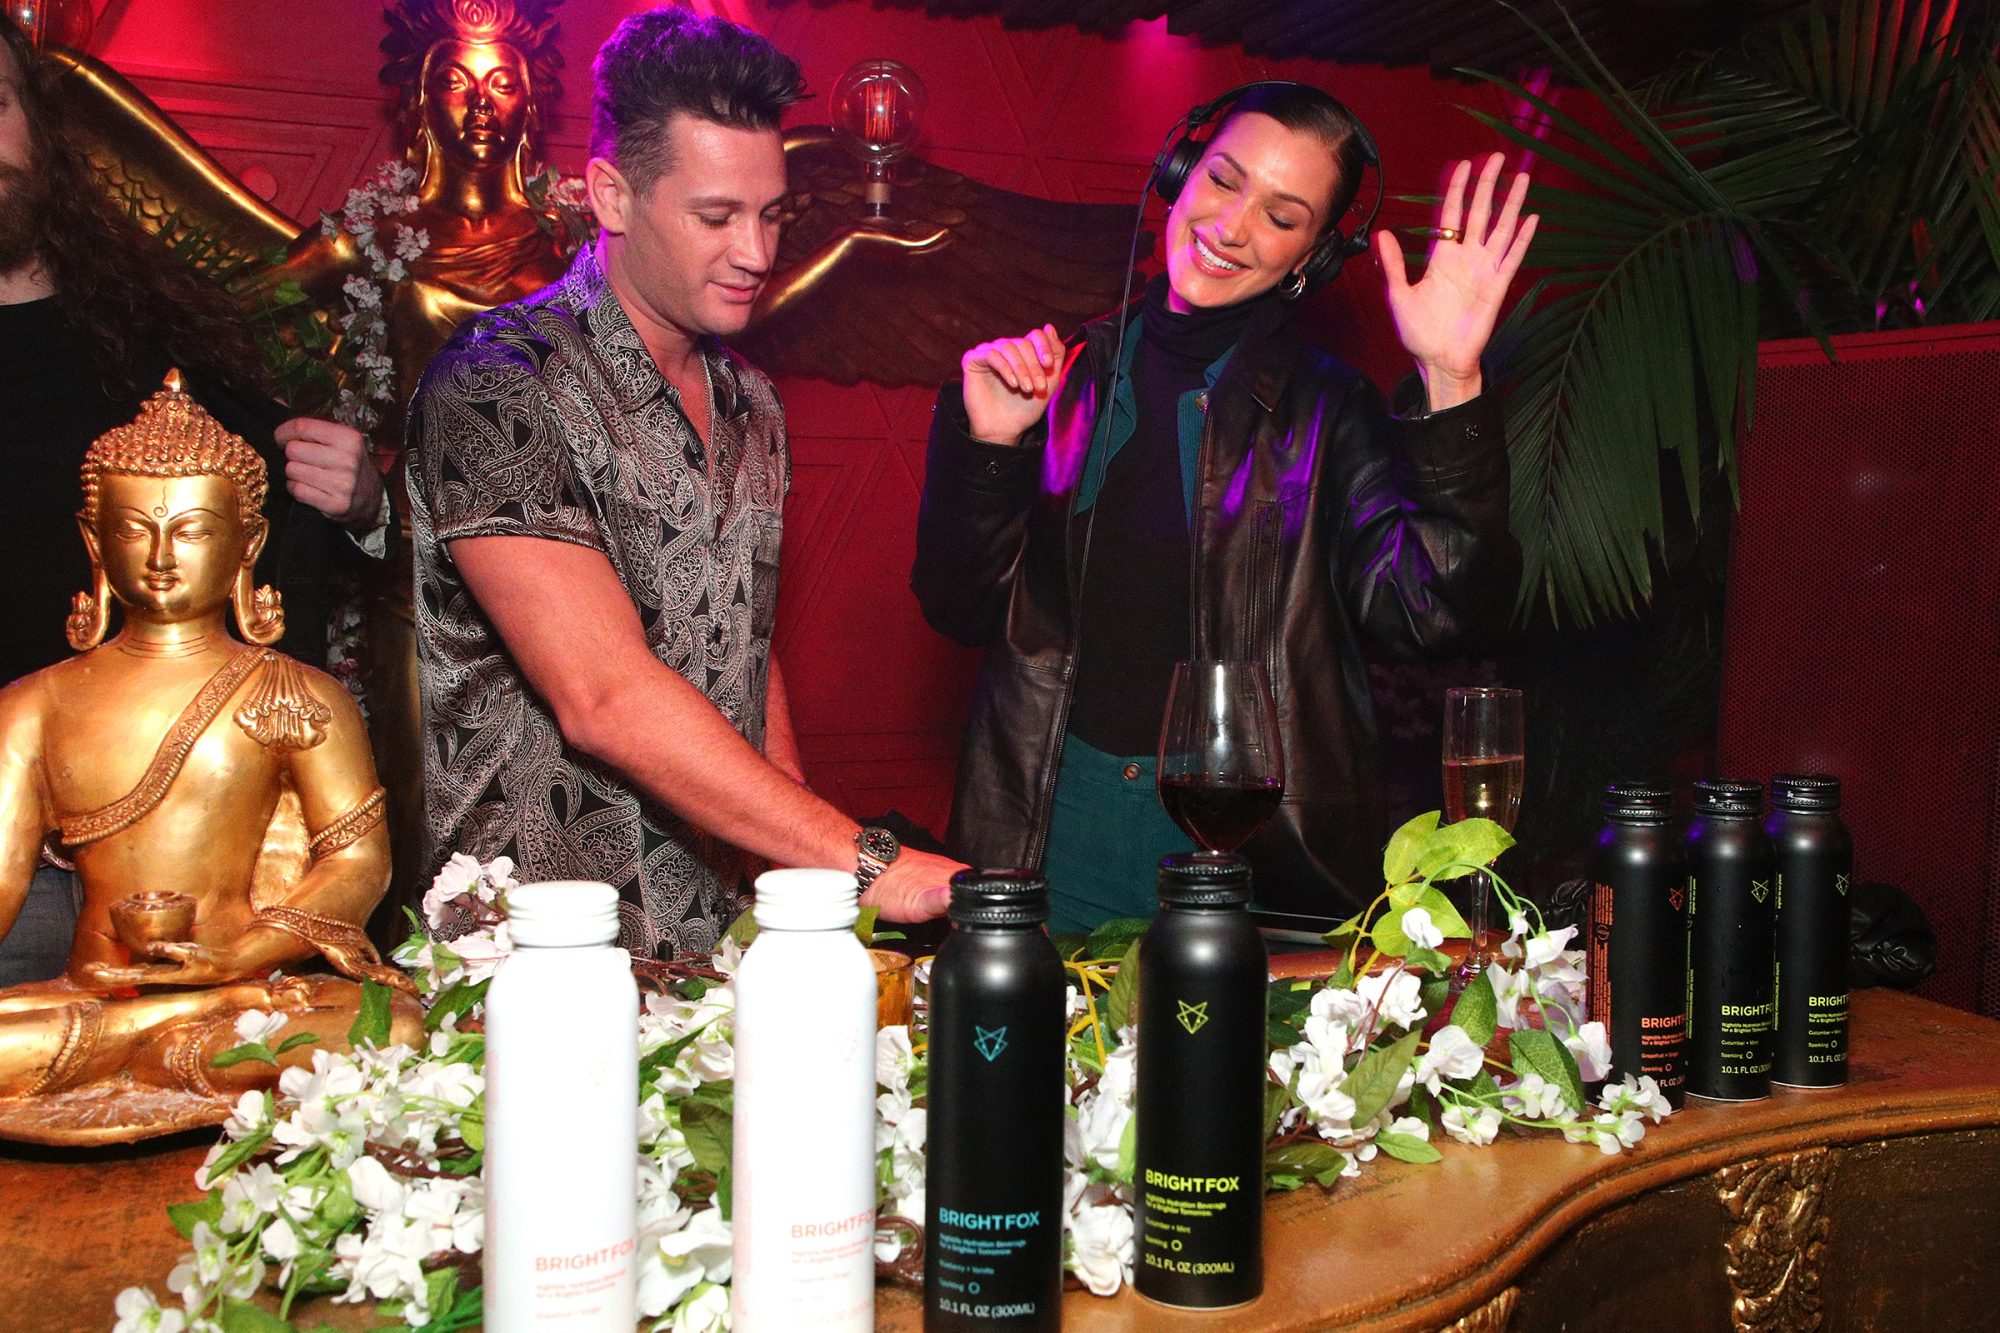 BrightFox At The La Detresse L.A. Stress Launch Party - New York Fashion Week February 2020